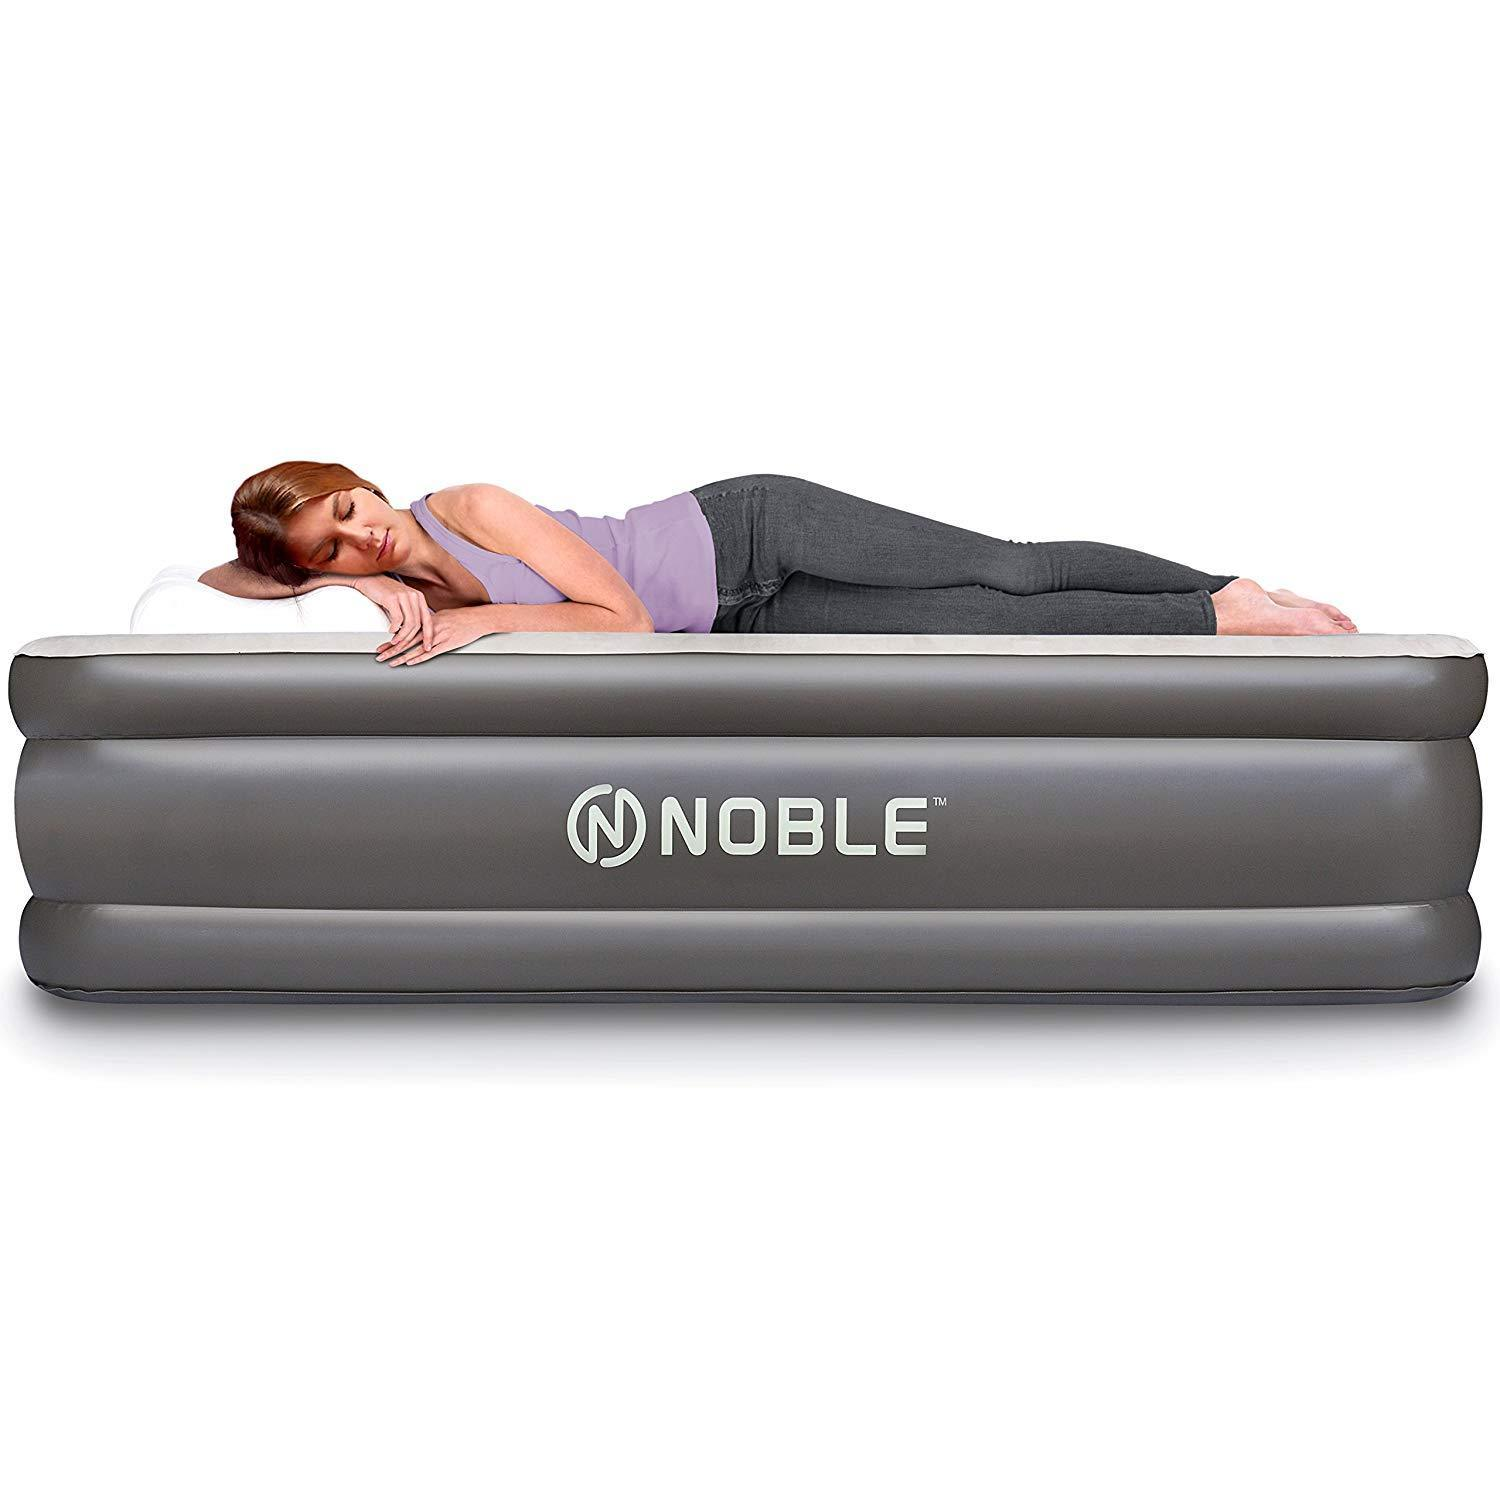 Noble Queen Size Comfort Double High Raised Air Mattress - Top Inflatable Airbed